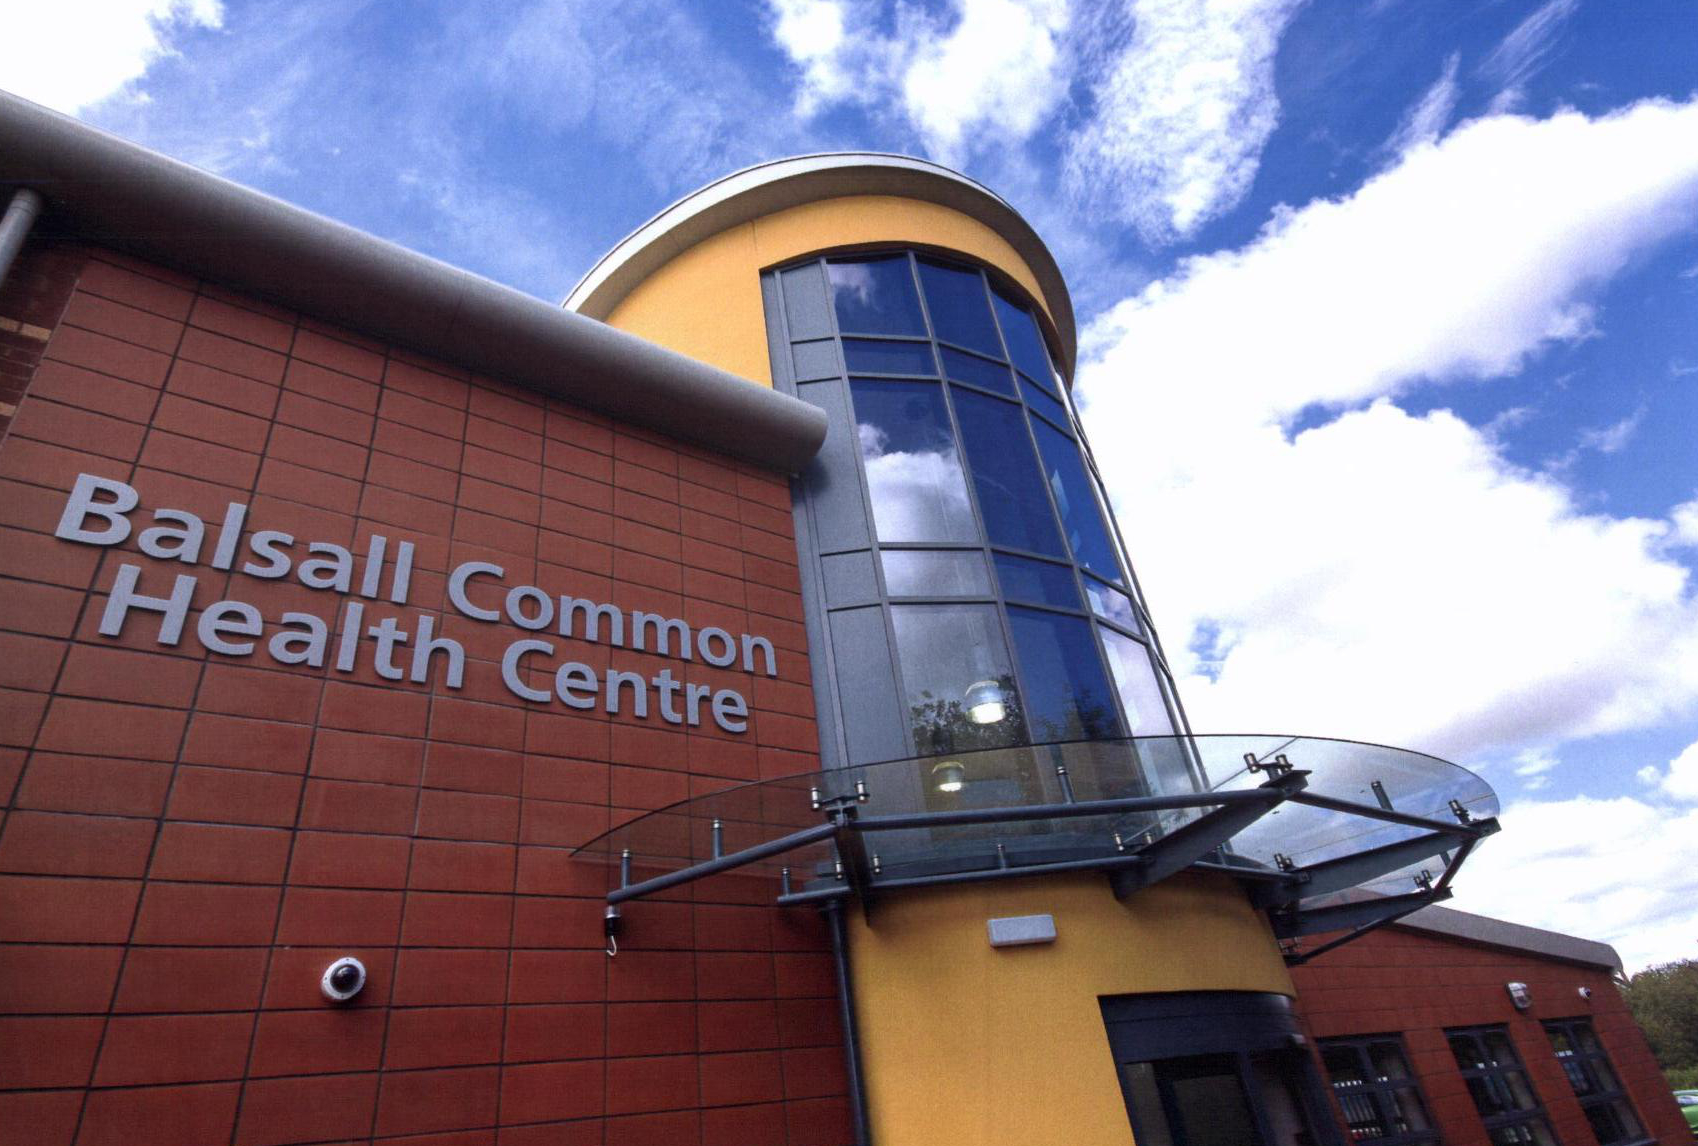 Balsall Common Surgery - About Us - Opening Ceremony at the